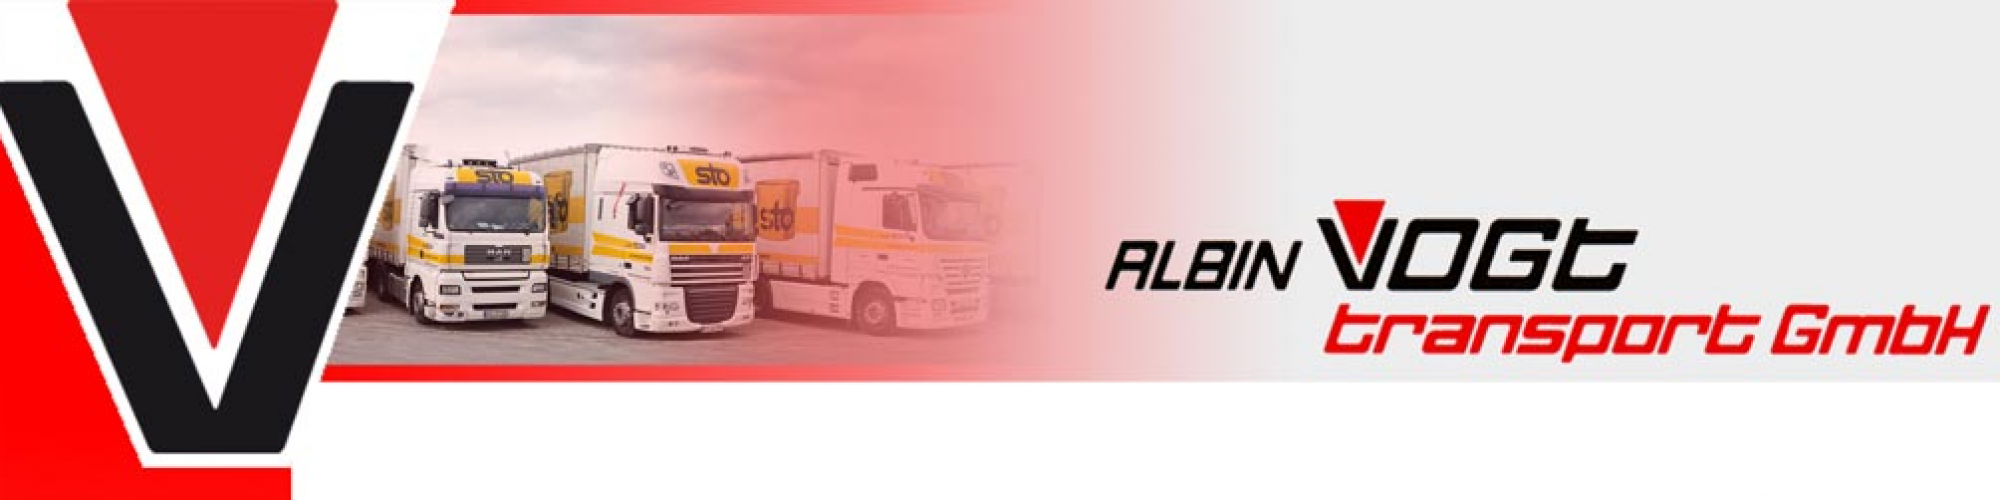 Albin Vogt Transport GmbH